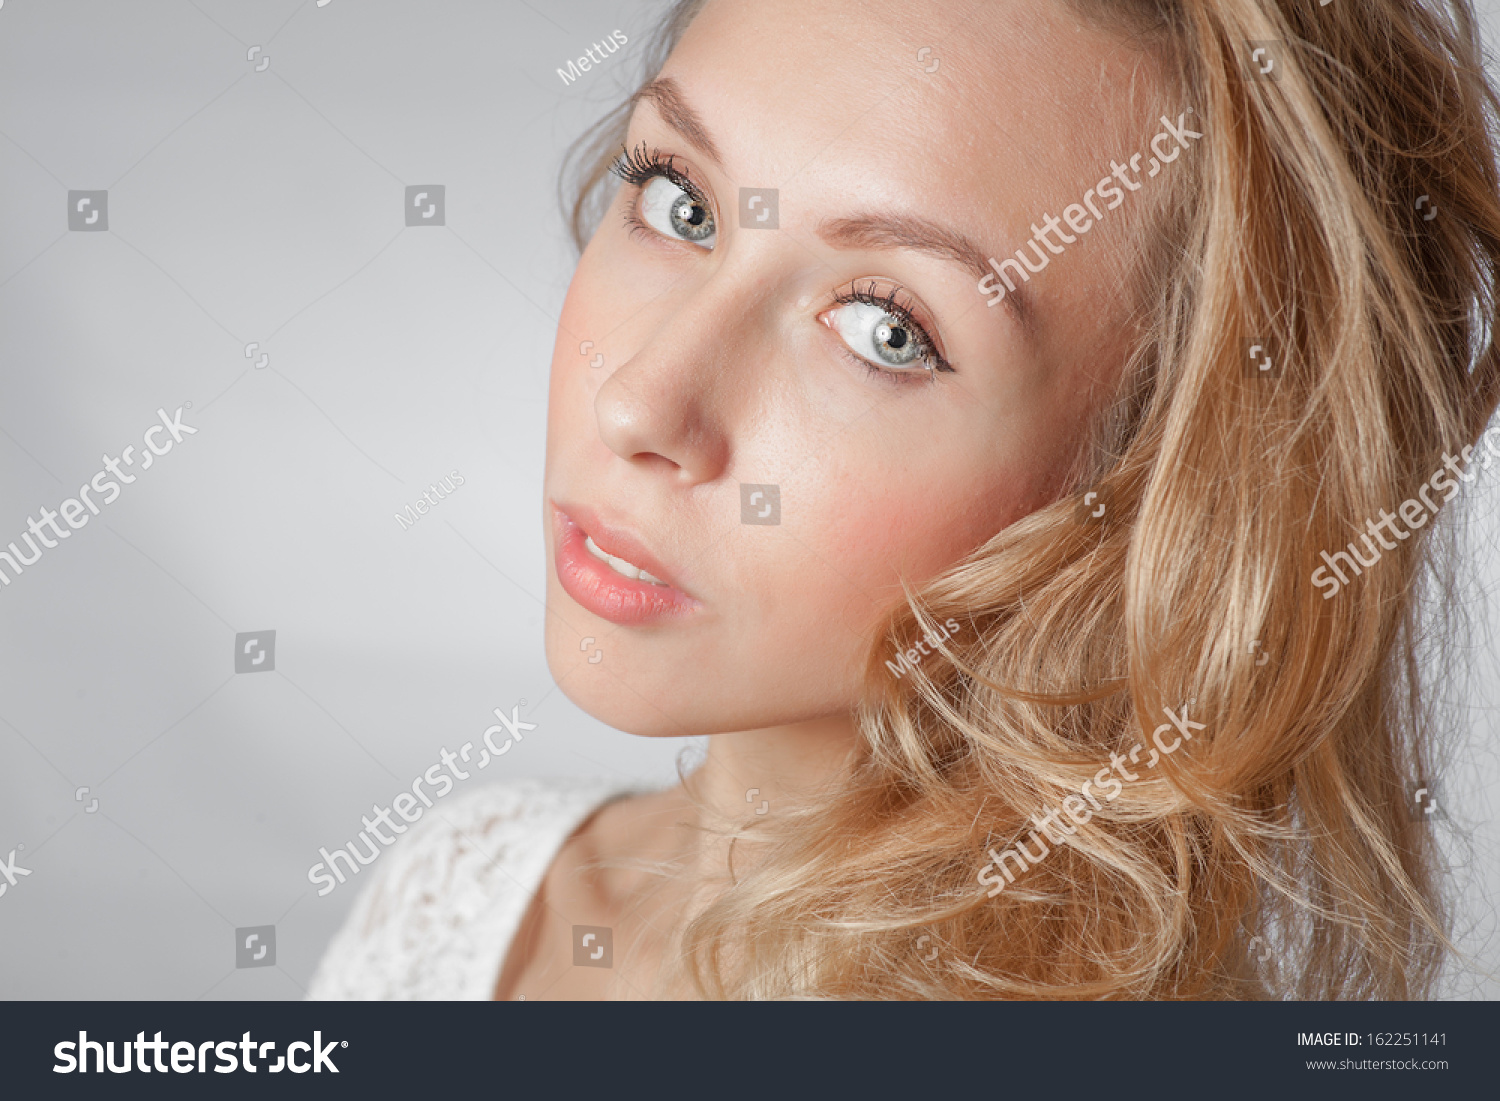 closeup of the face, blond women with long hair studio shot on white background